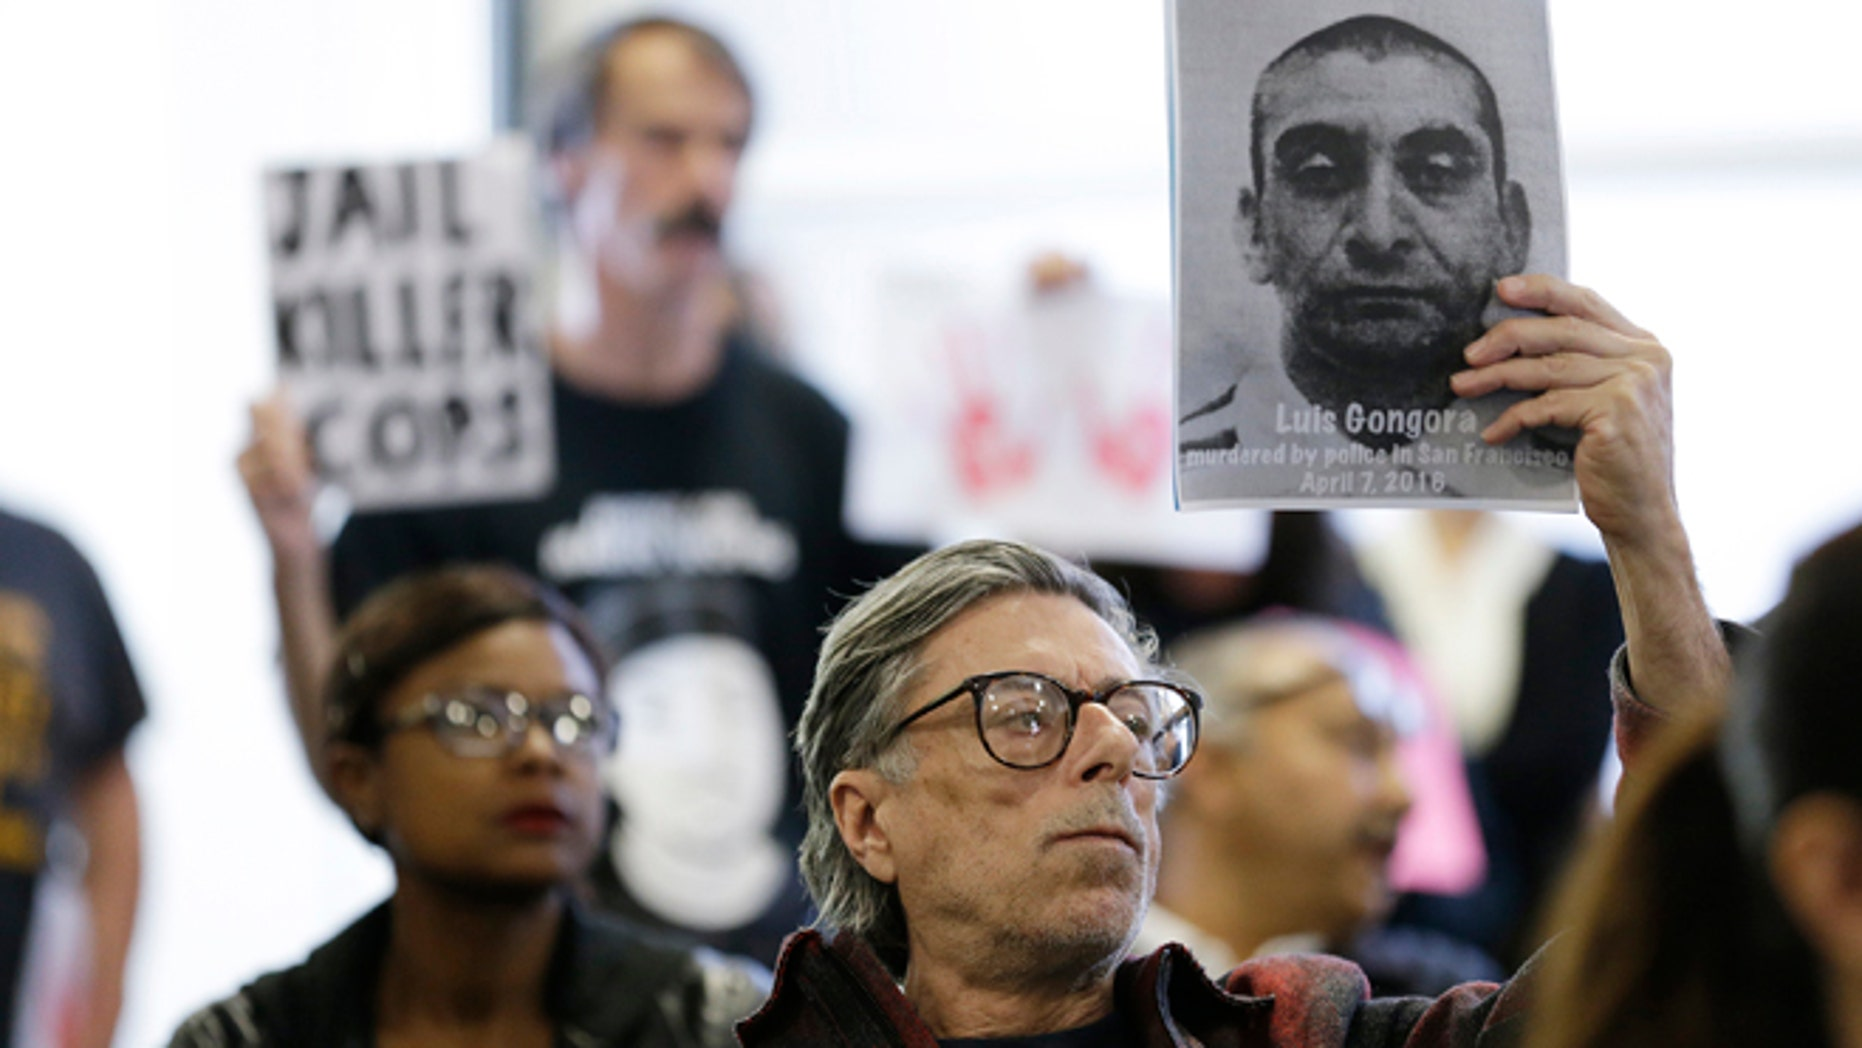 A man holds up a picture of Luis Gongora during a town hall meeting Wednesday, April 13, 2016, in San Francisco.